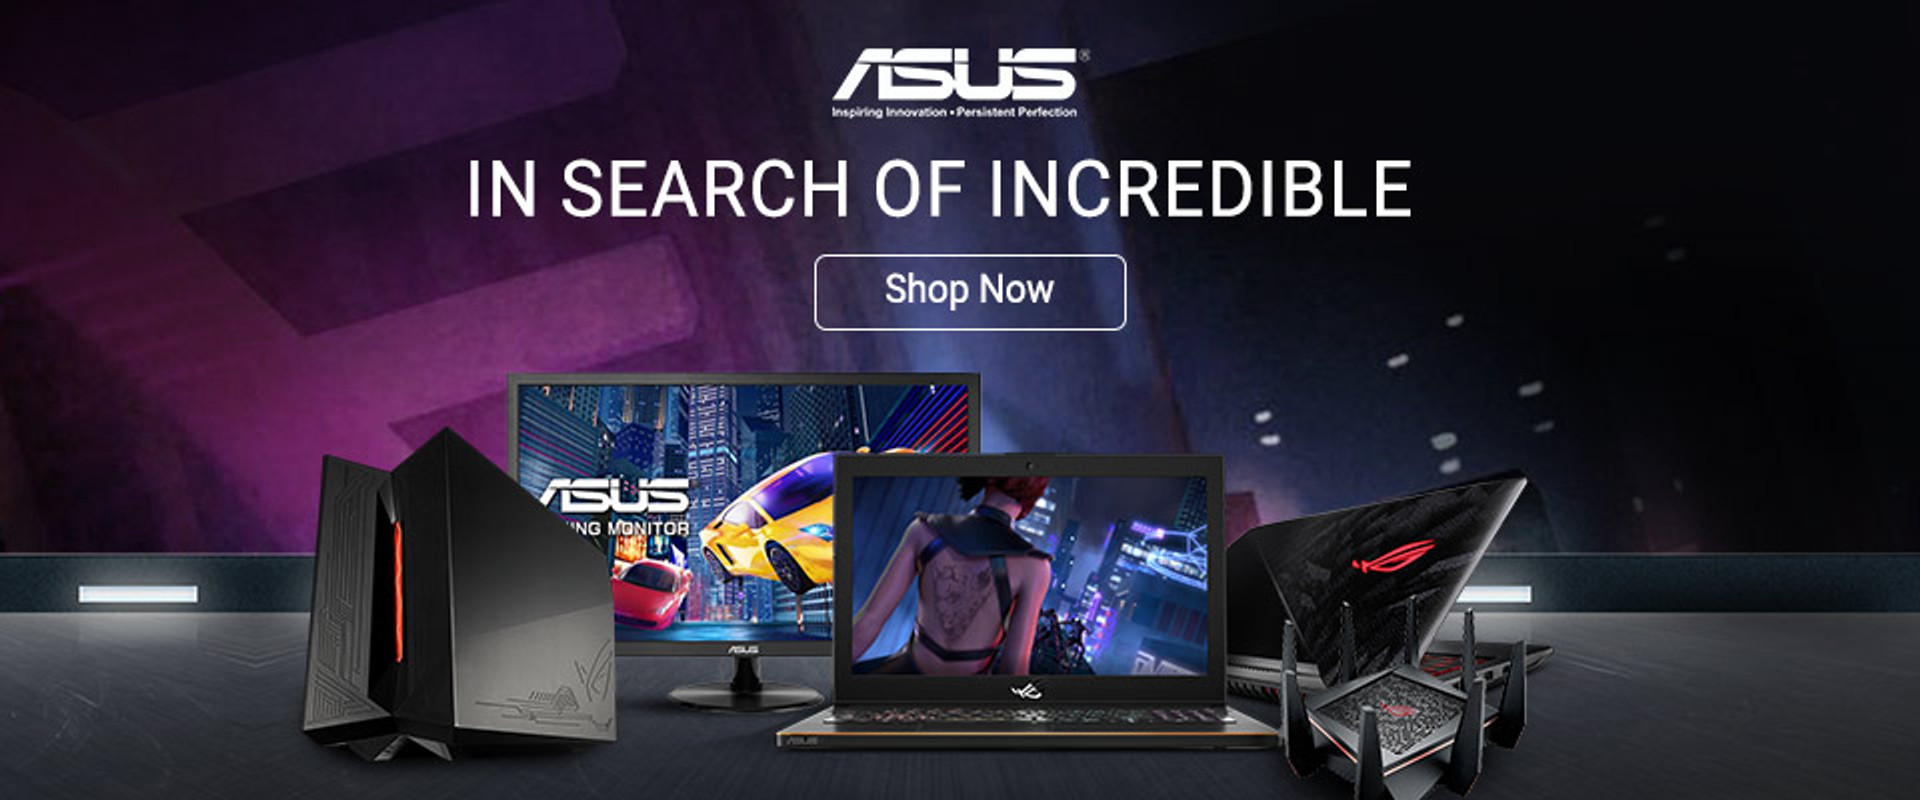 Asus Systems and Components